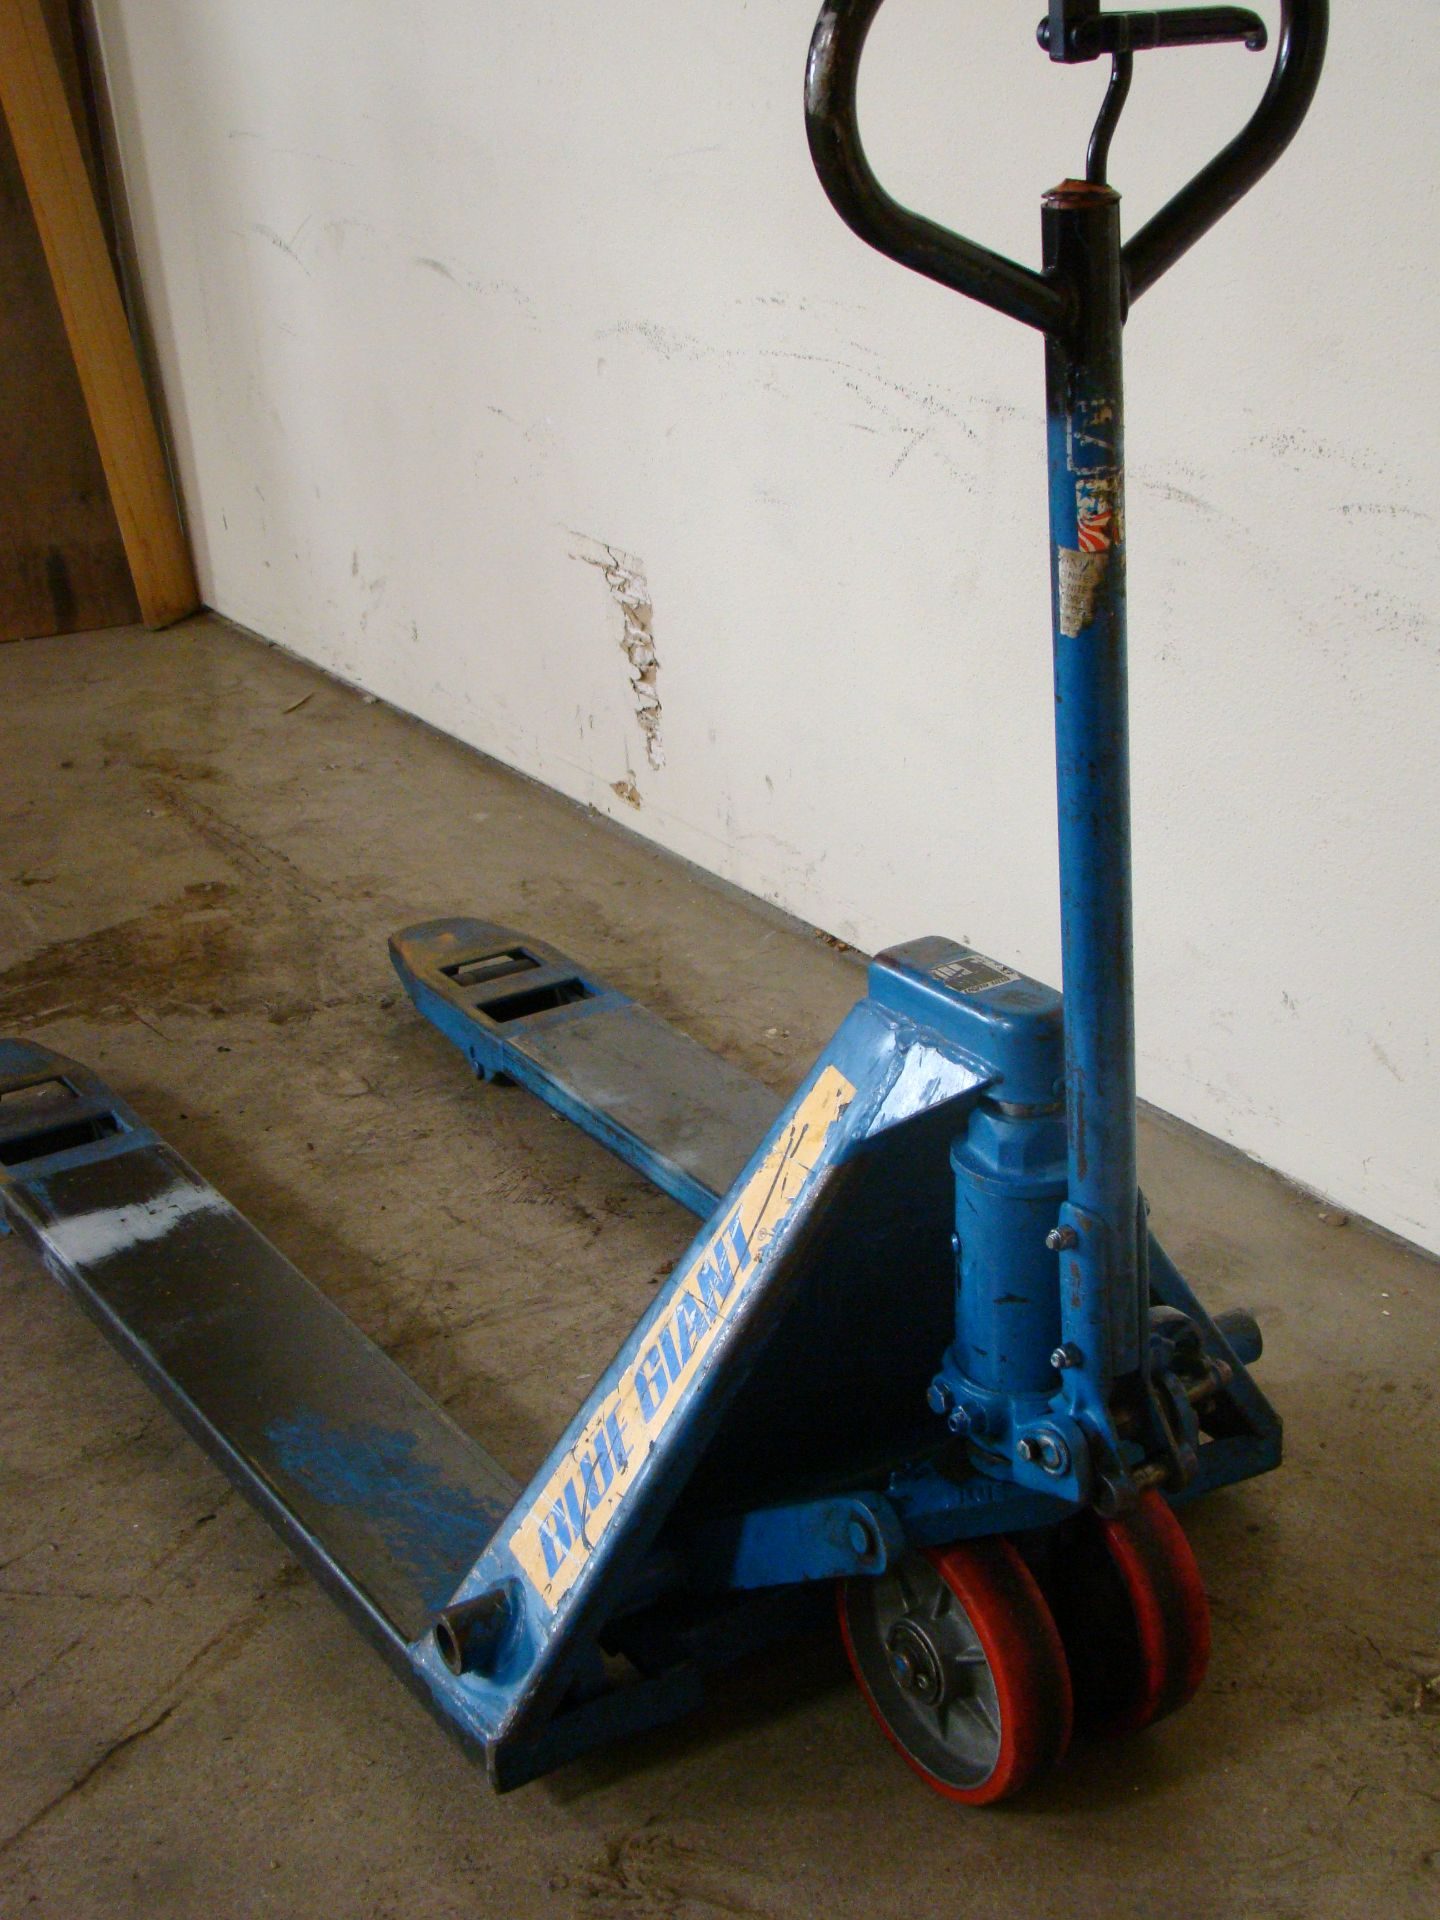 Lot 38 - Blue Giant Pallet Jack, Model T50